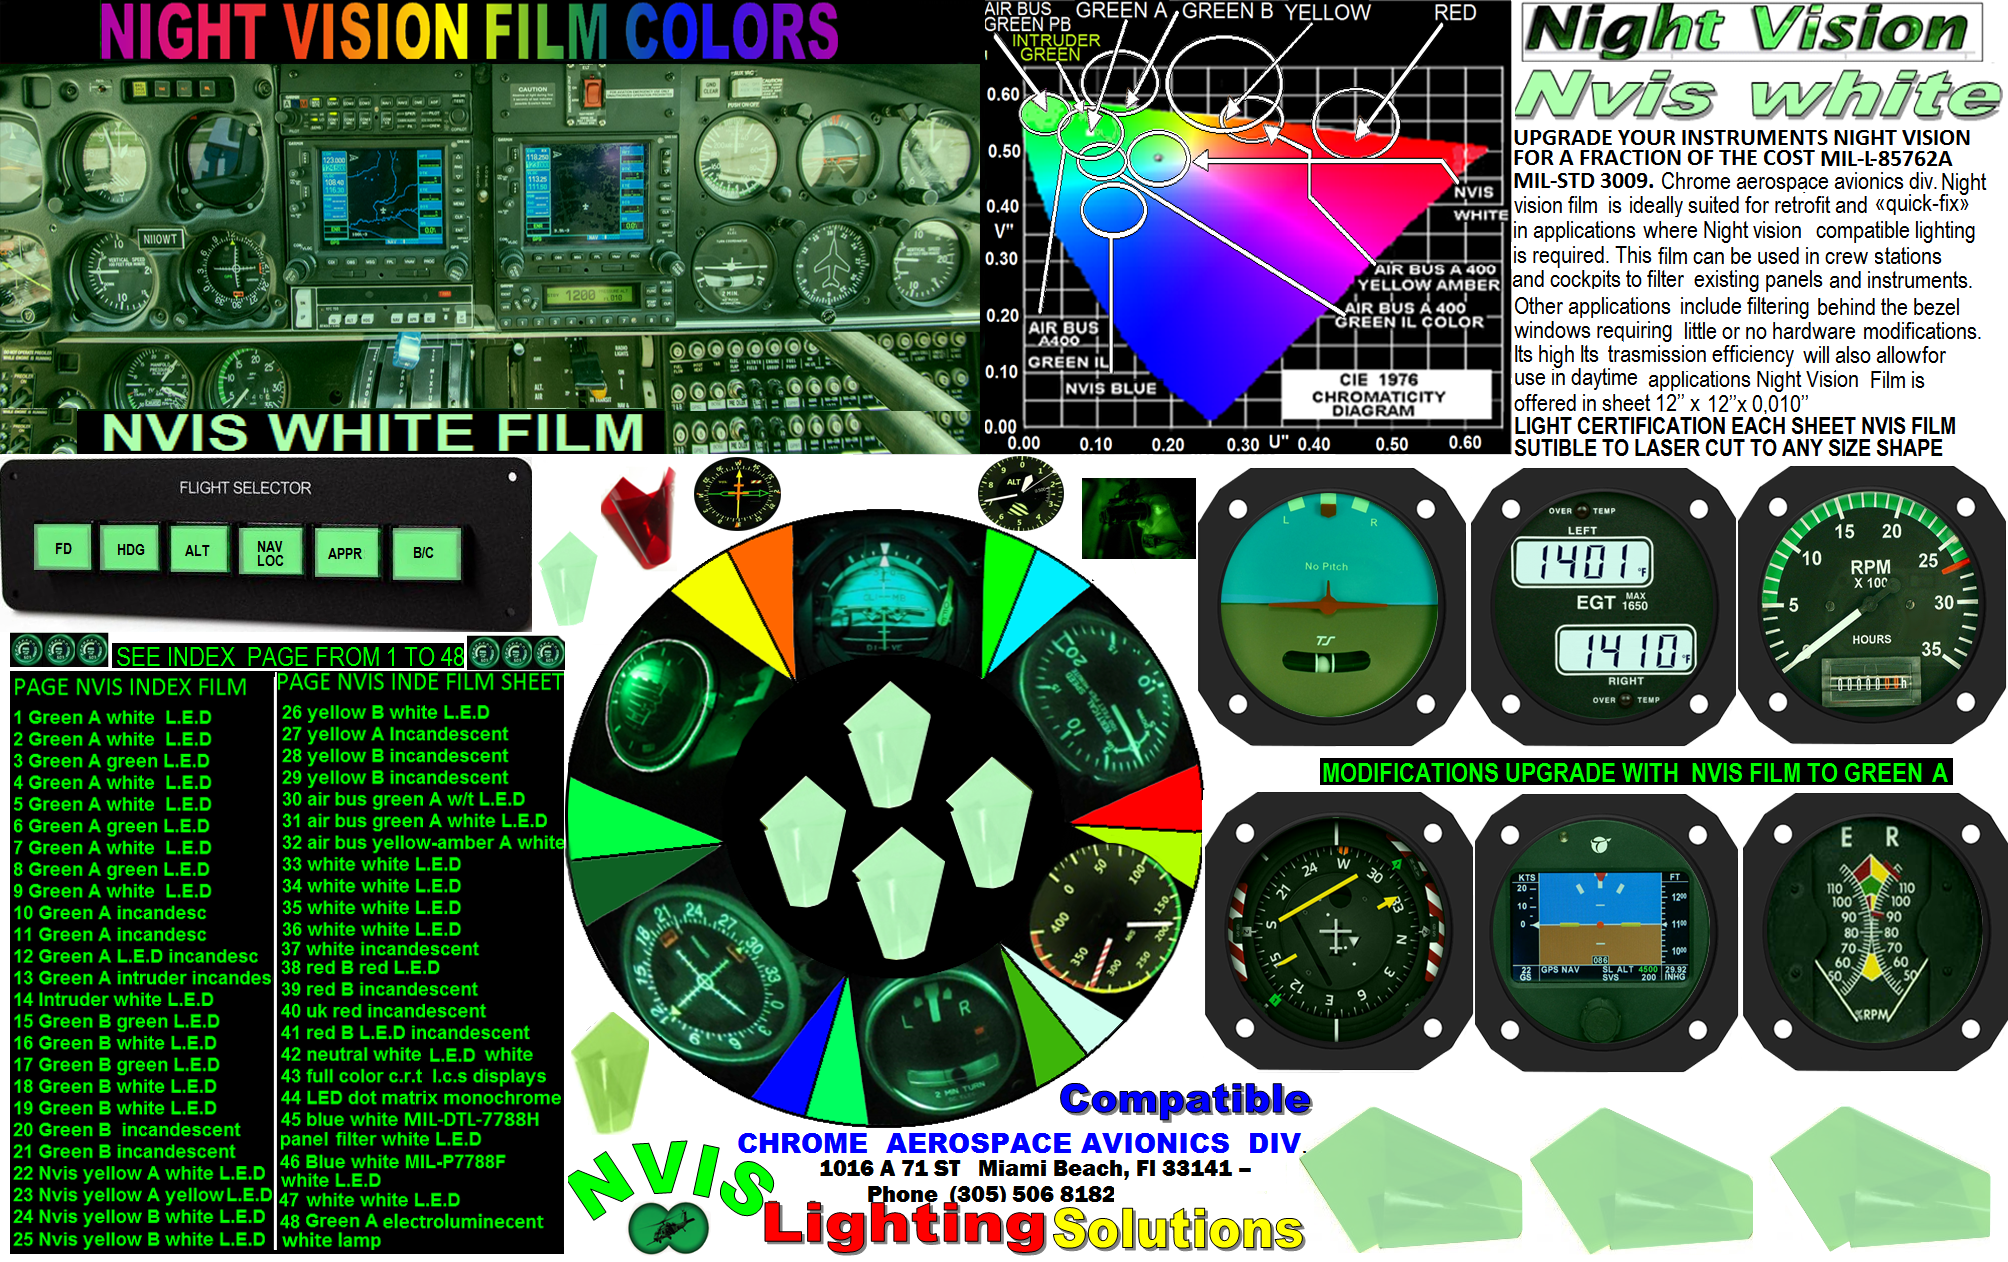 11 NVIS WHITE  FILM UPGRADE CONVERSION INSTRUMENTS  4-24-20.png